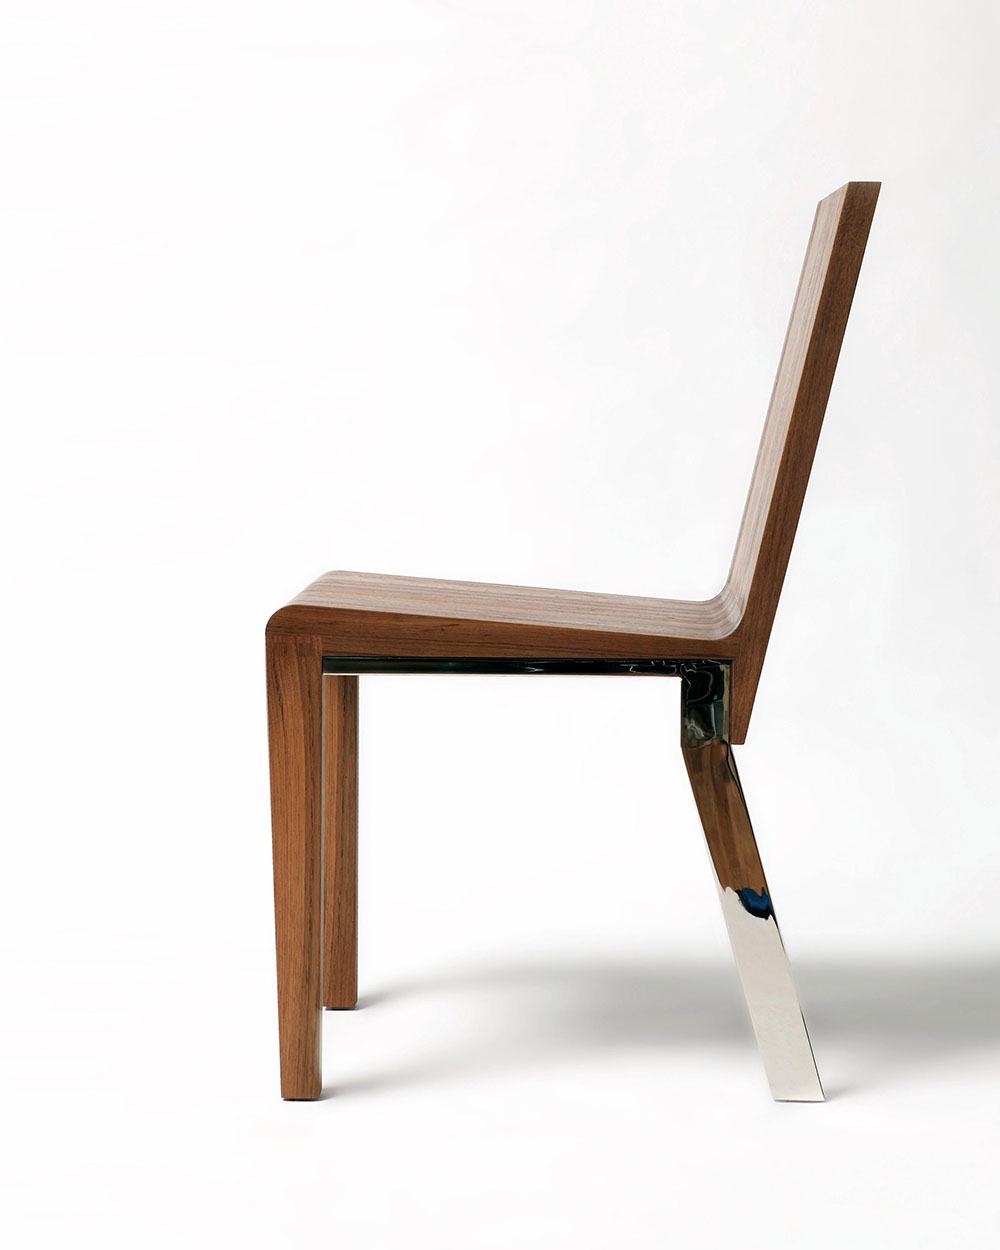 Side view of custom occasional chair, shown on white background.